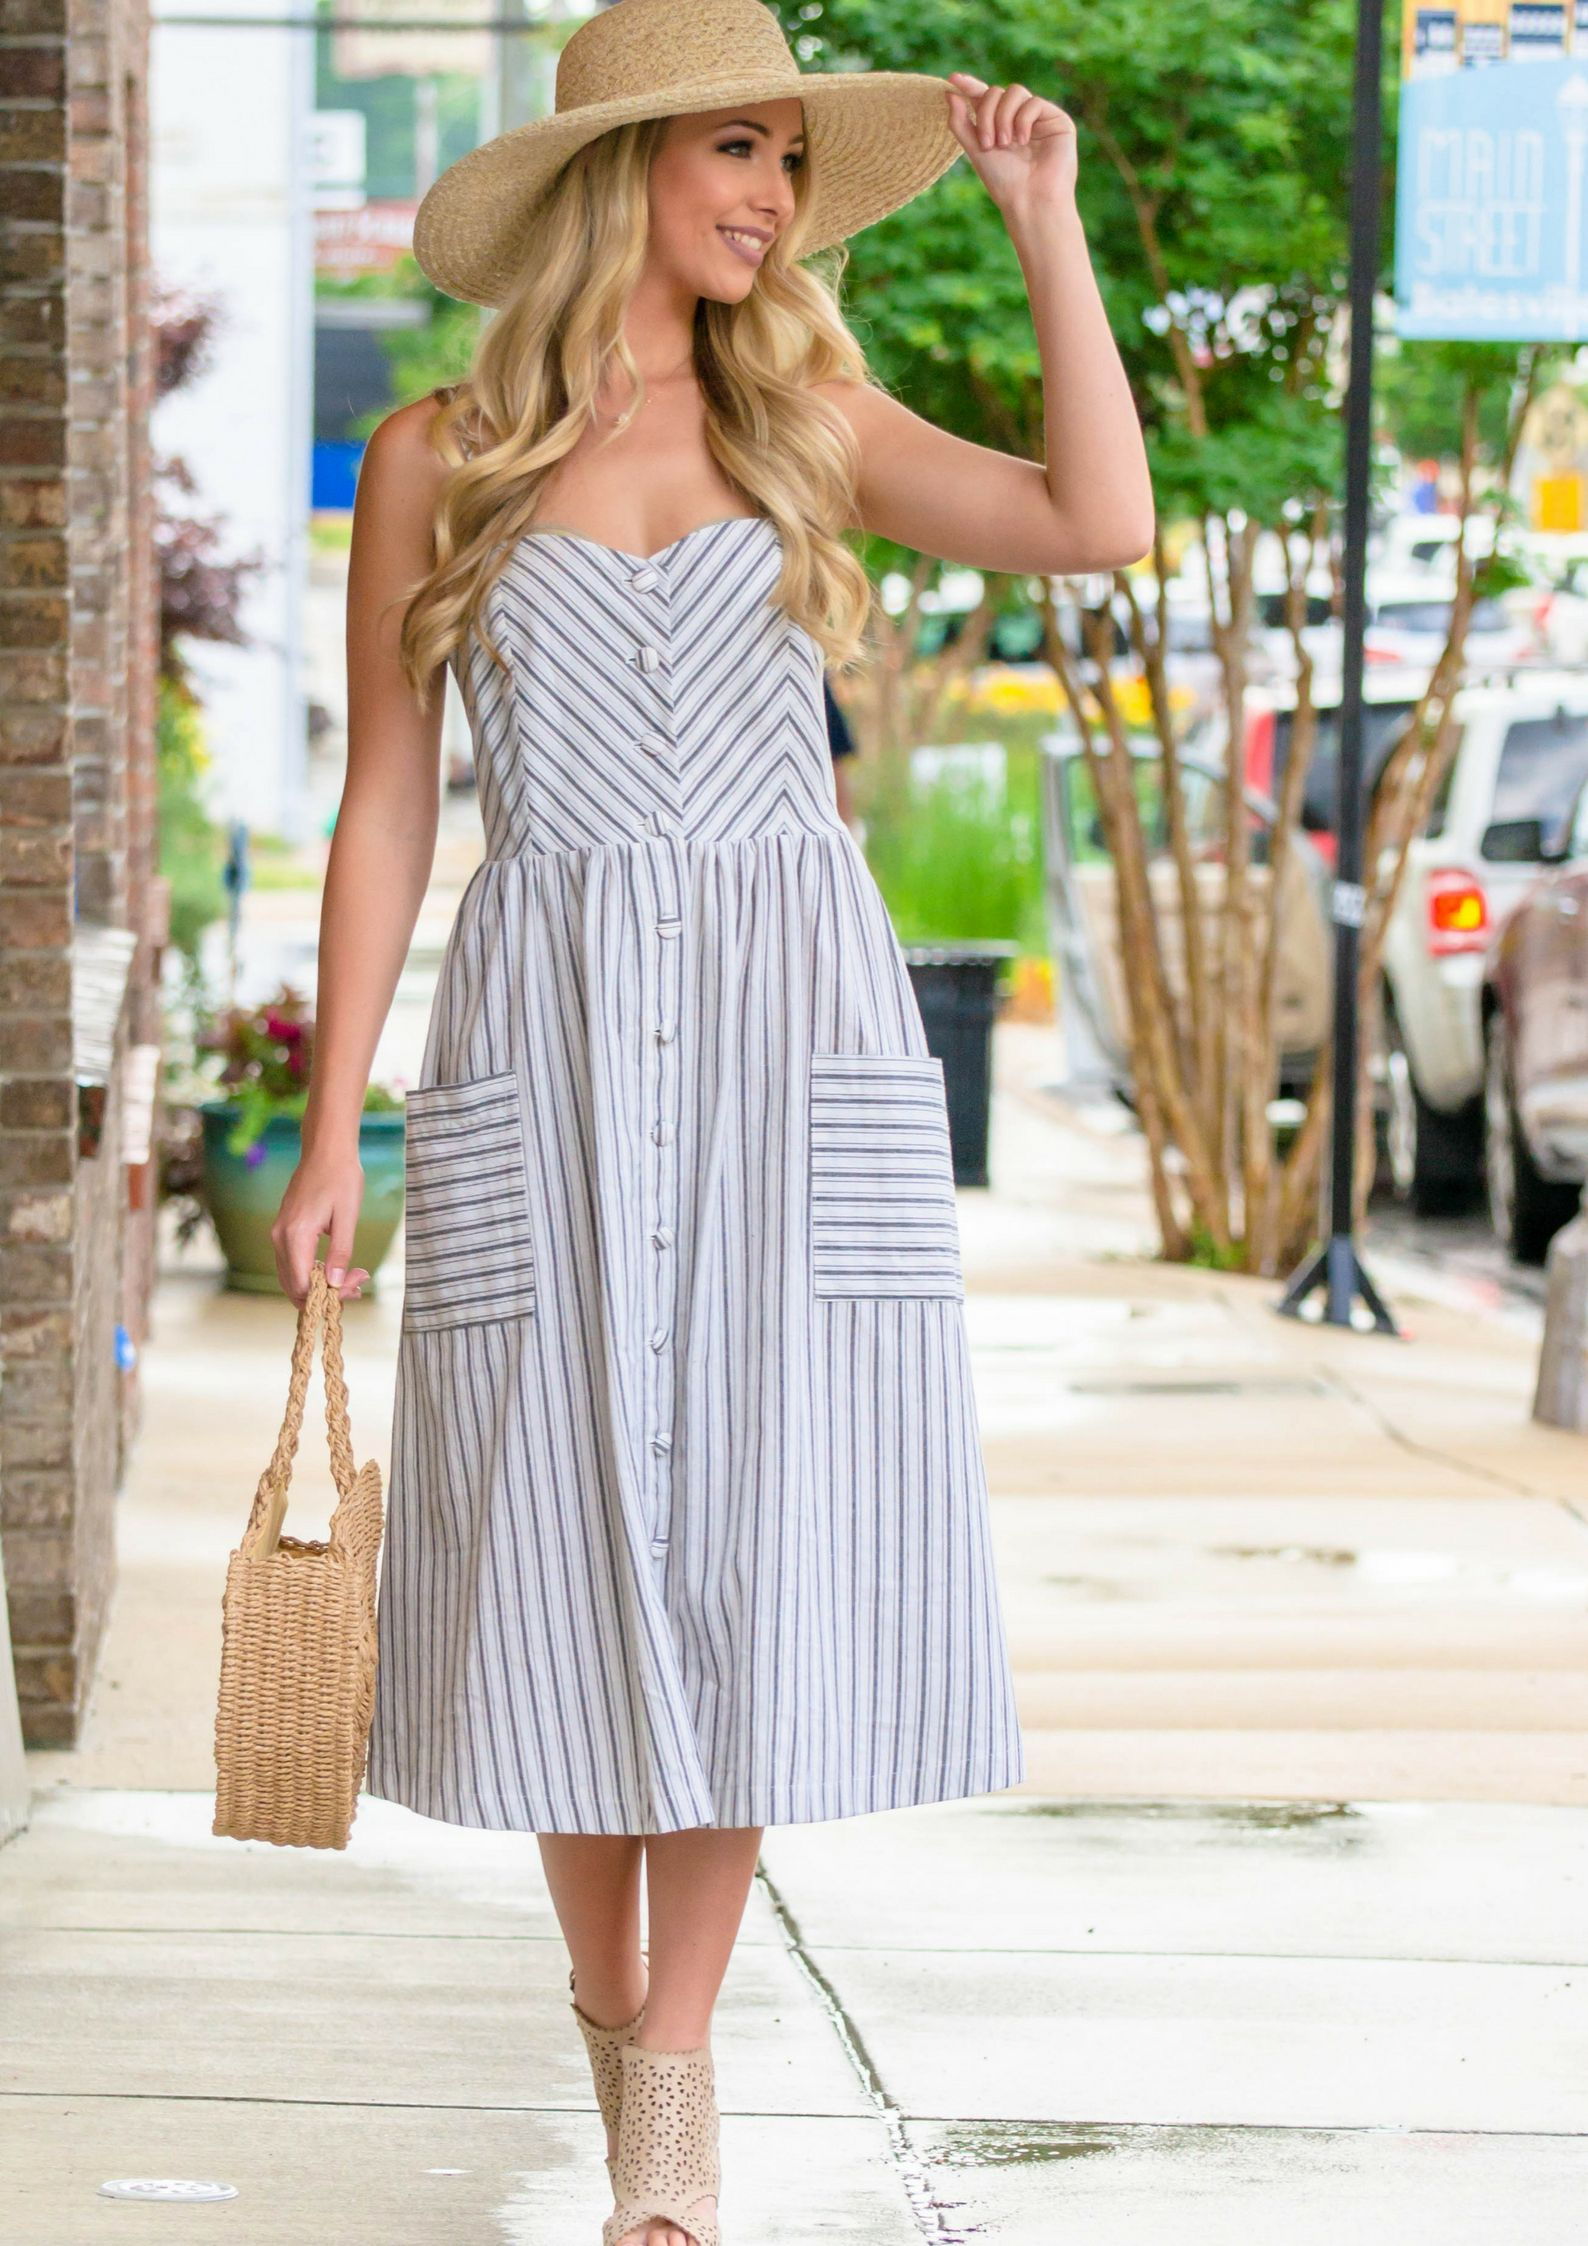 3a7405a44e0 How To Style A Summer Outfit With a Pinstriped Midi Dress  fashion  style   dress  dresses  sundress